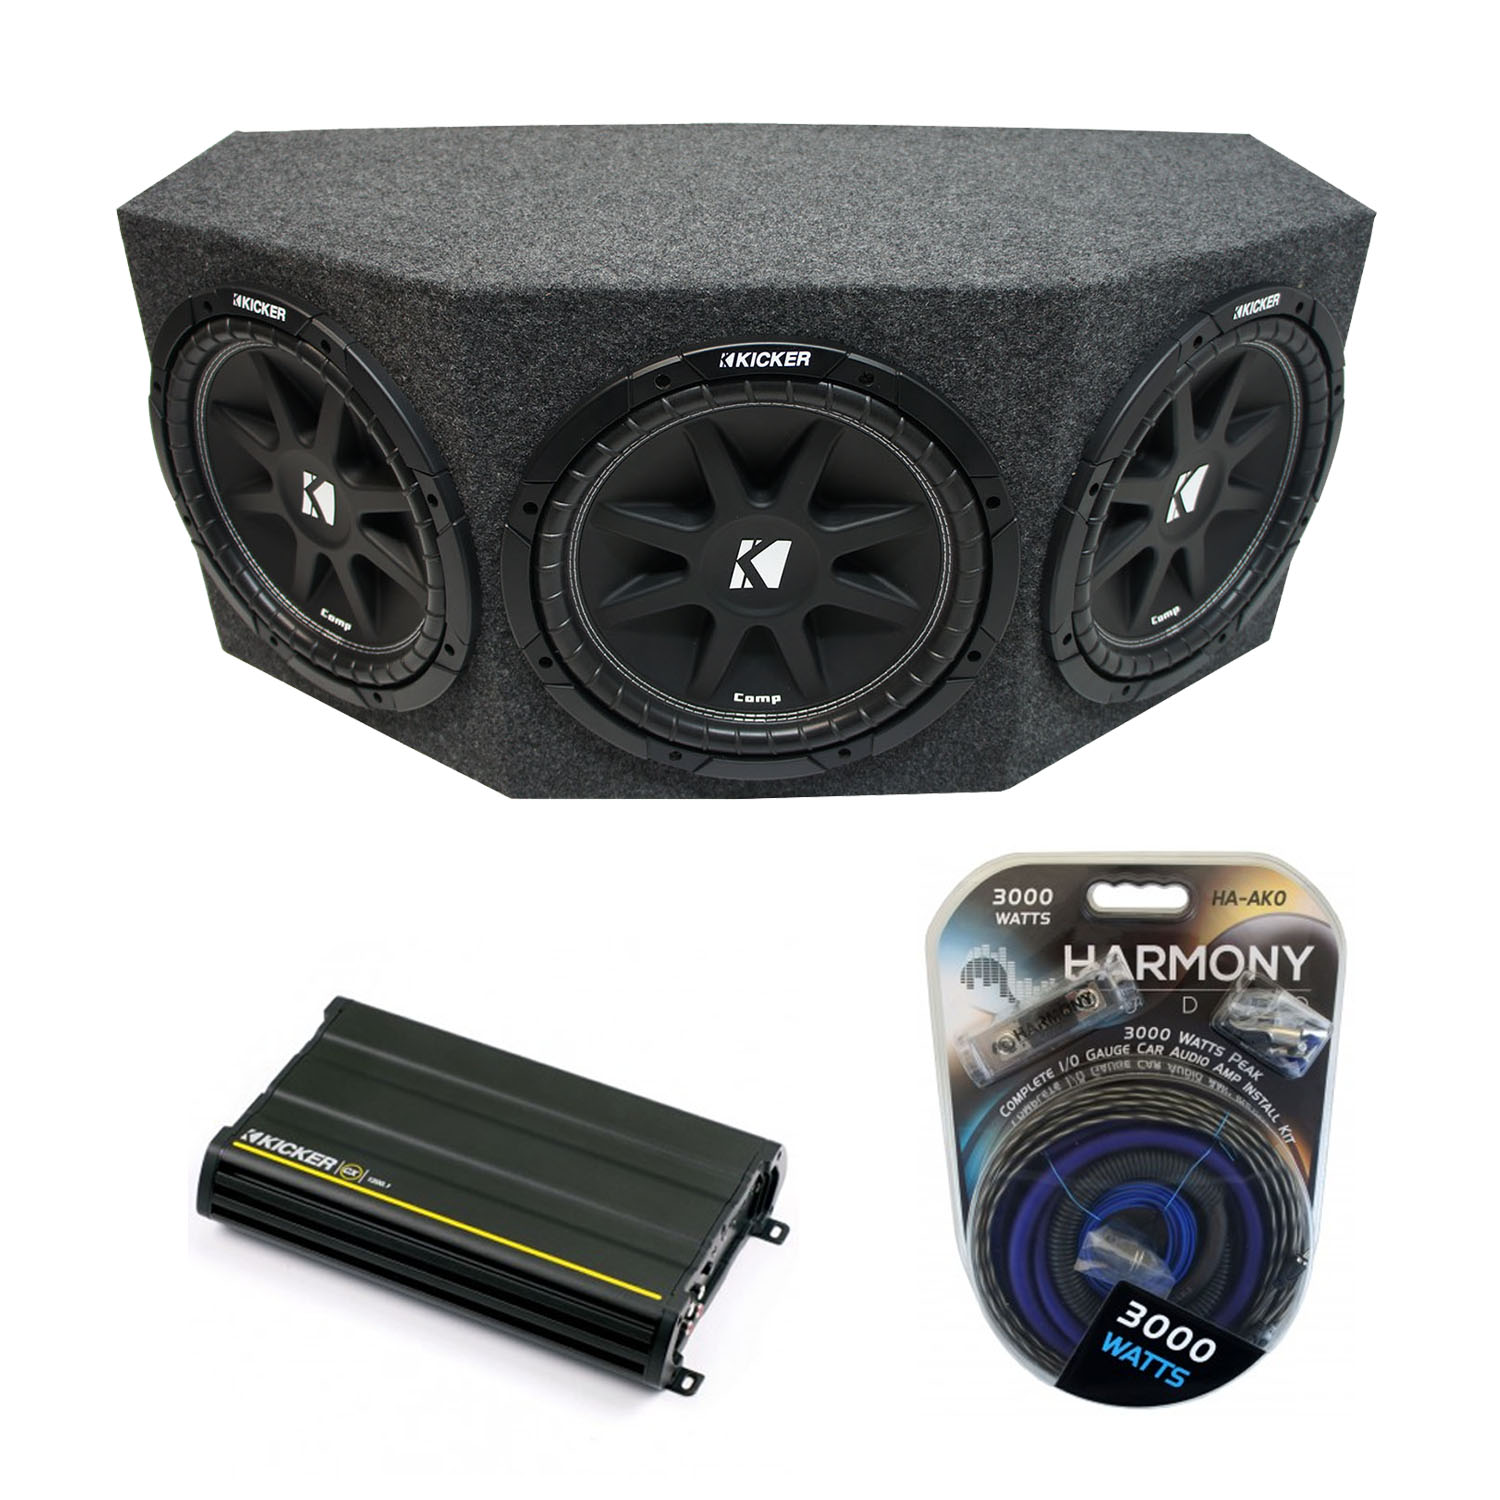 "Kicker Comp C12 Triple 12"" Subwoofer Loaded 1800 Watt Sub Box & CX1200.1 Amp - Factory Certified Refurbished"